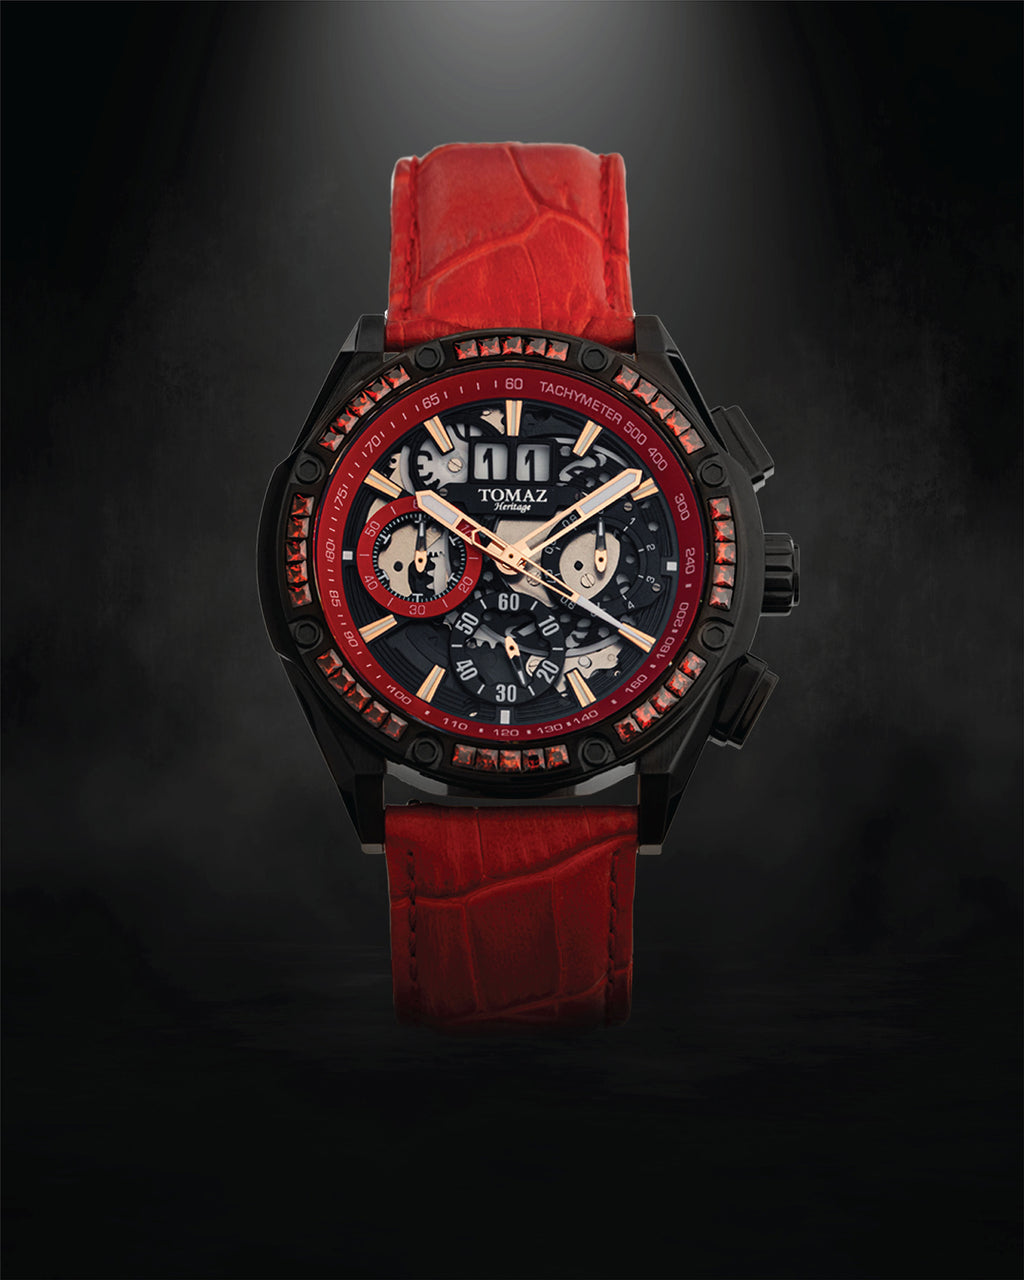 Tomaz Men's Watch RAWR III with Swarovski (Red/Black) -TW024A-D2